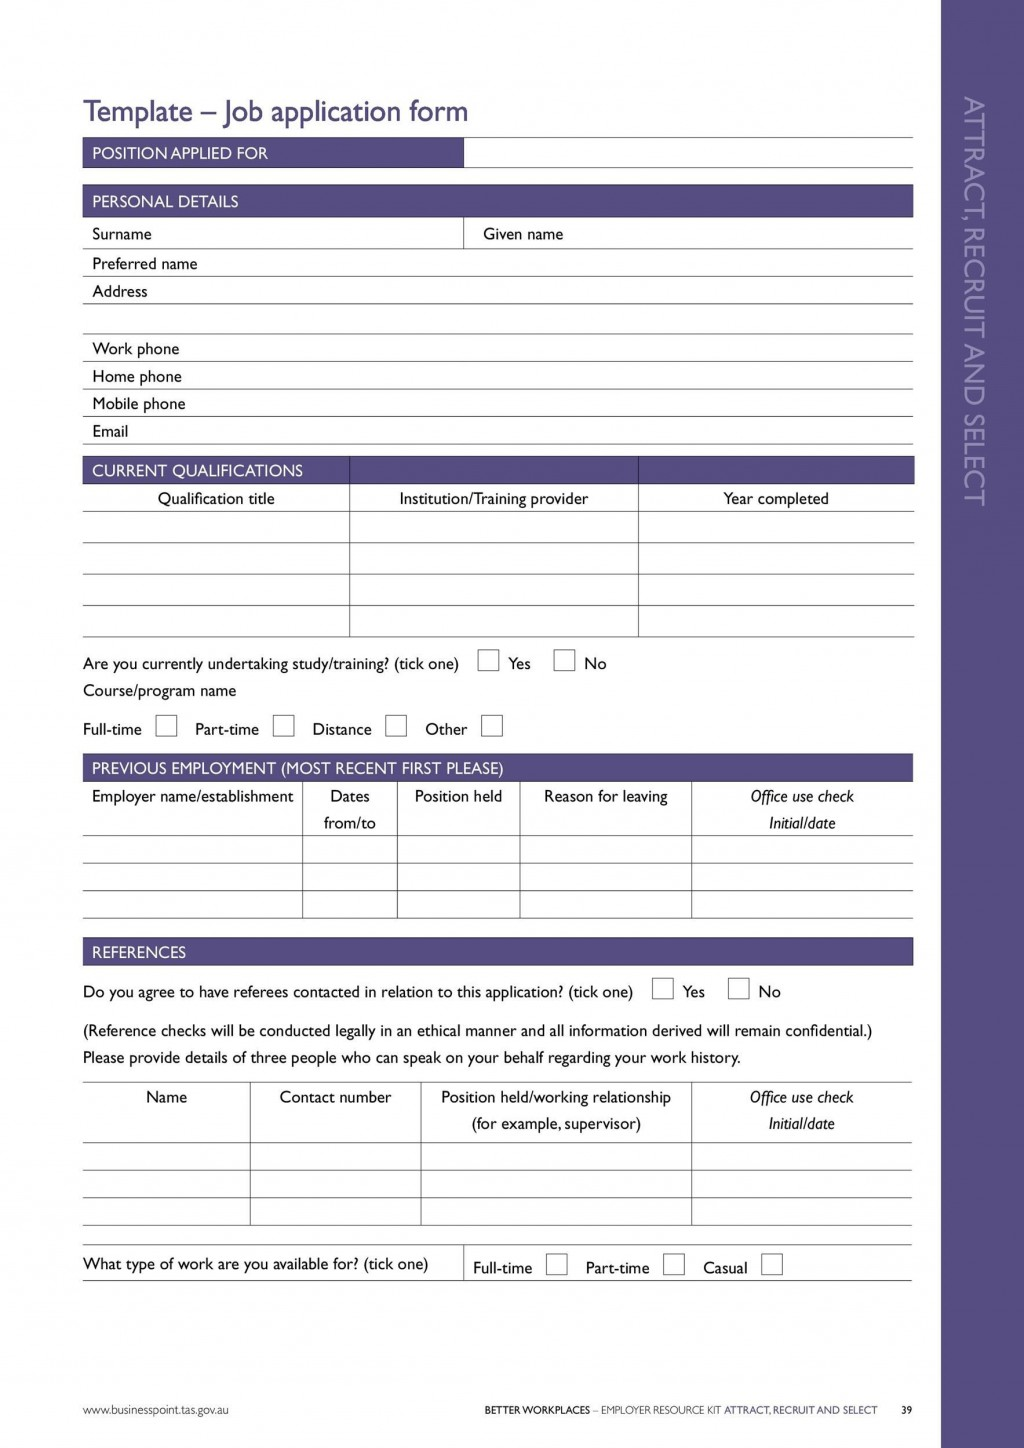 006 Wonderful Employee Application Form Template Word High Definition  Job Download Simple Example UkLarge